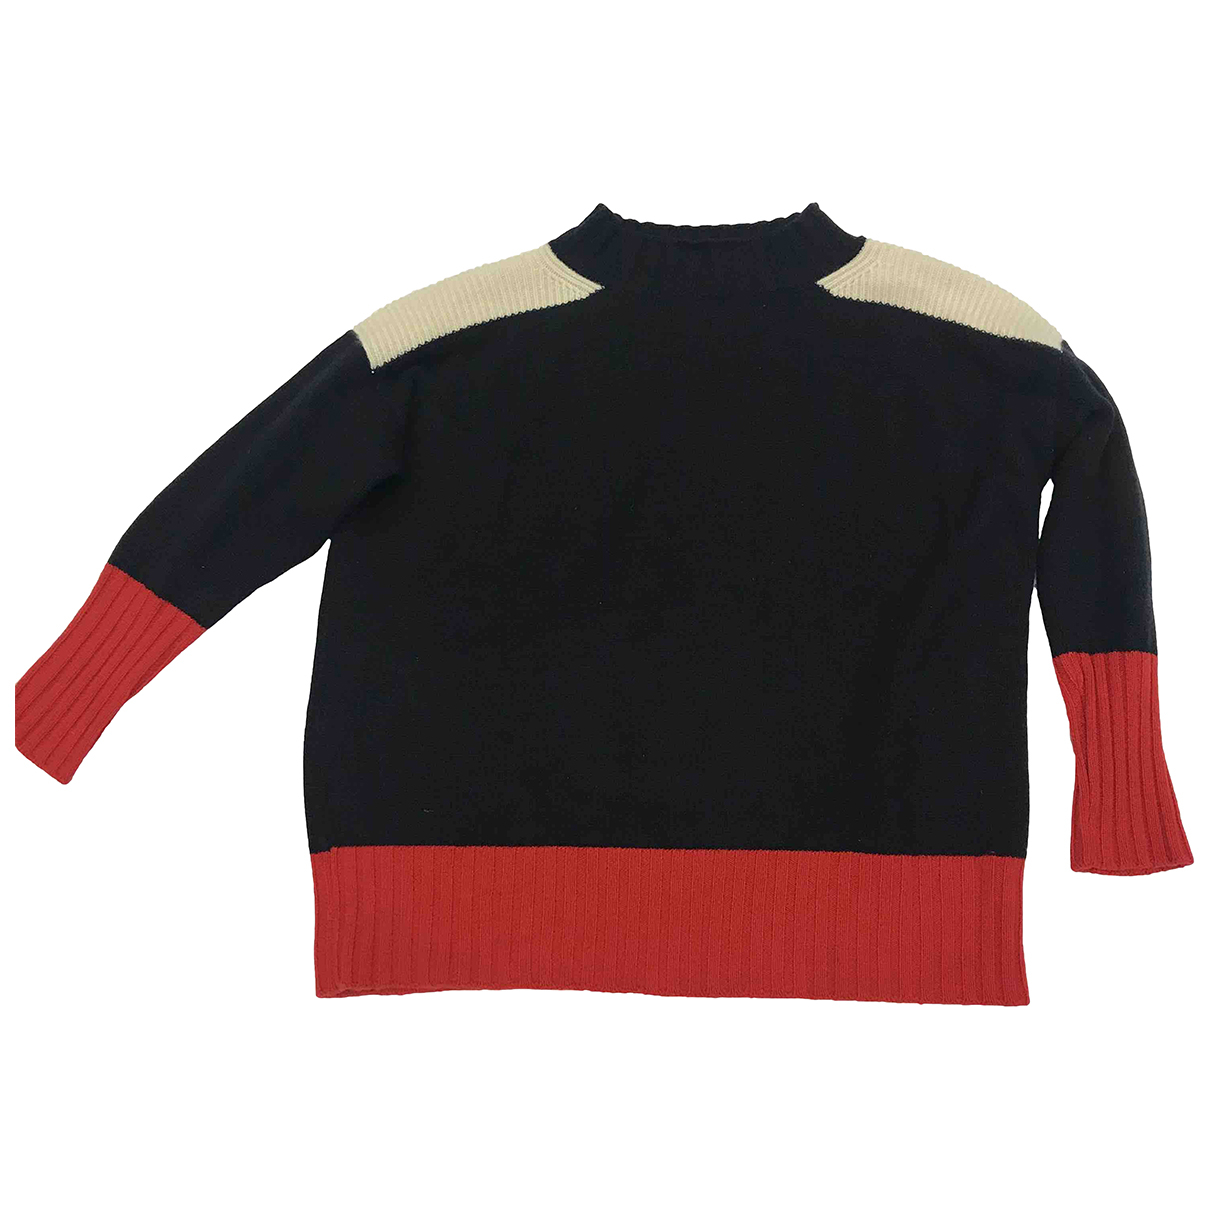 Chinti & Parker N Navy Cashmere Knitwear for Women 34 FR